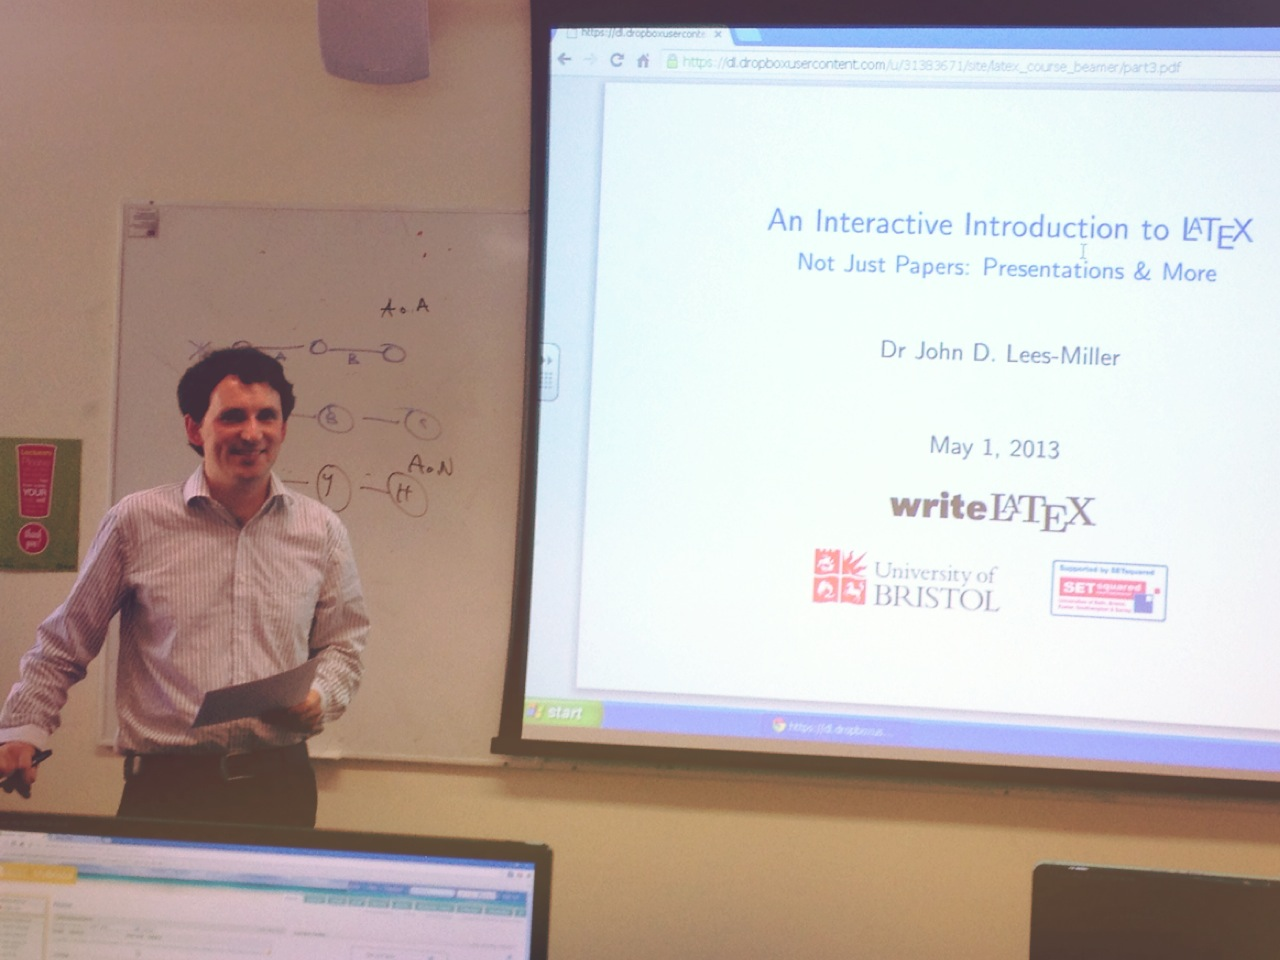 Dr John Lees-Miller presenting Interactive Online Introduction to LaTeX